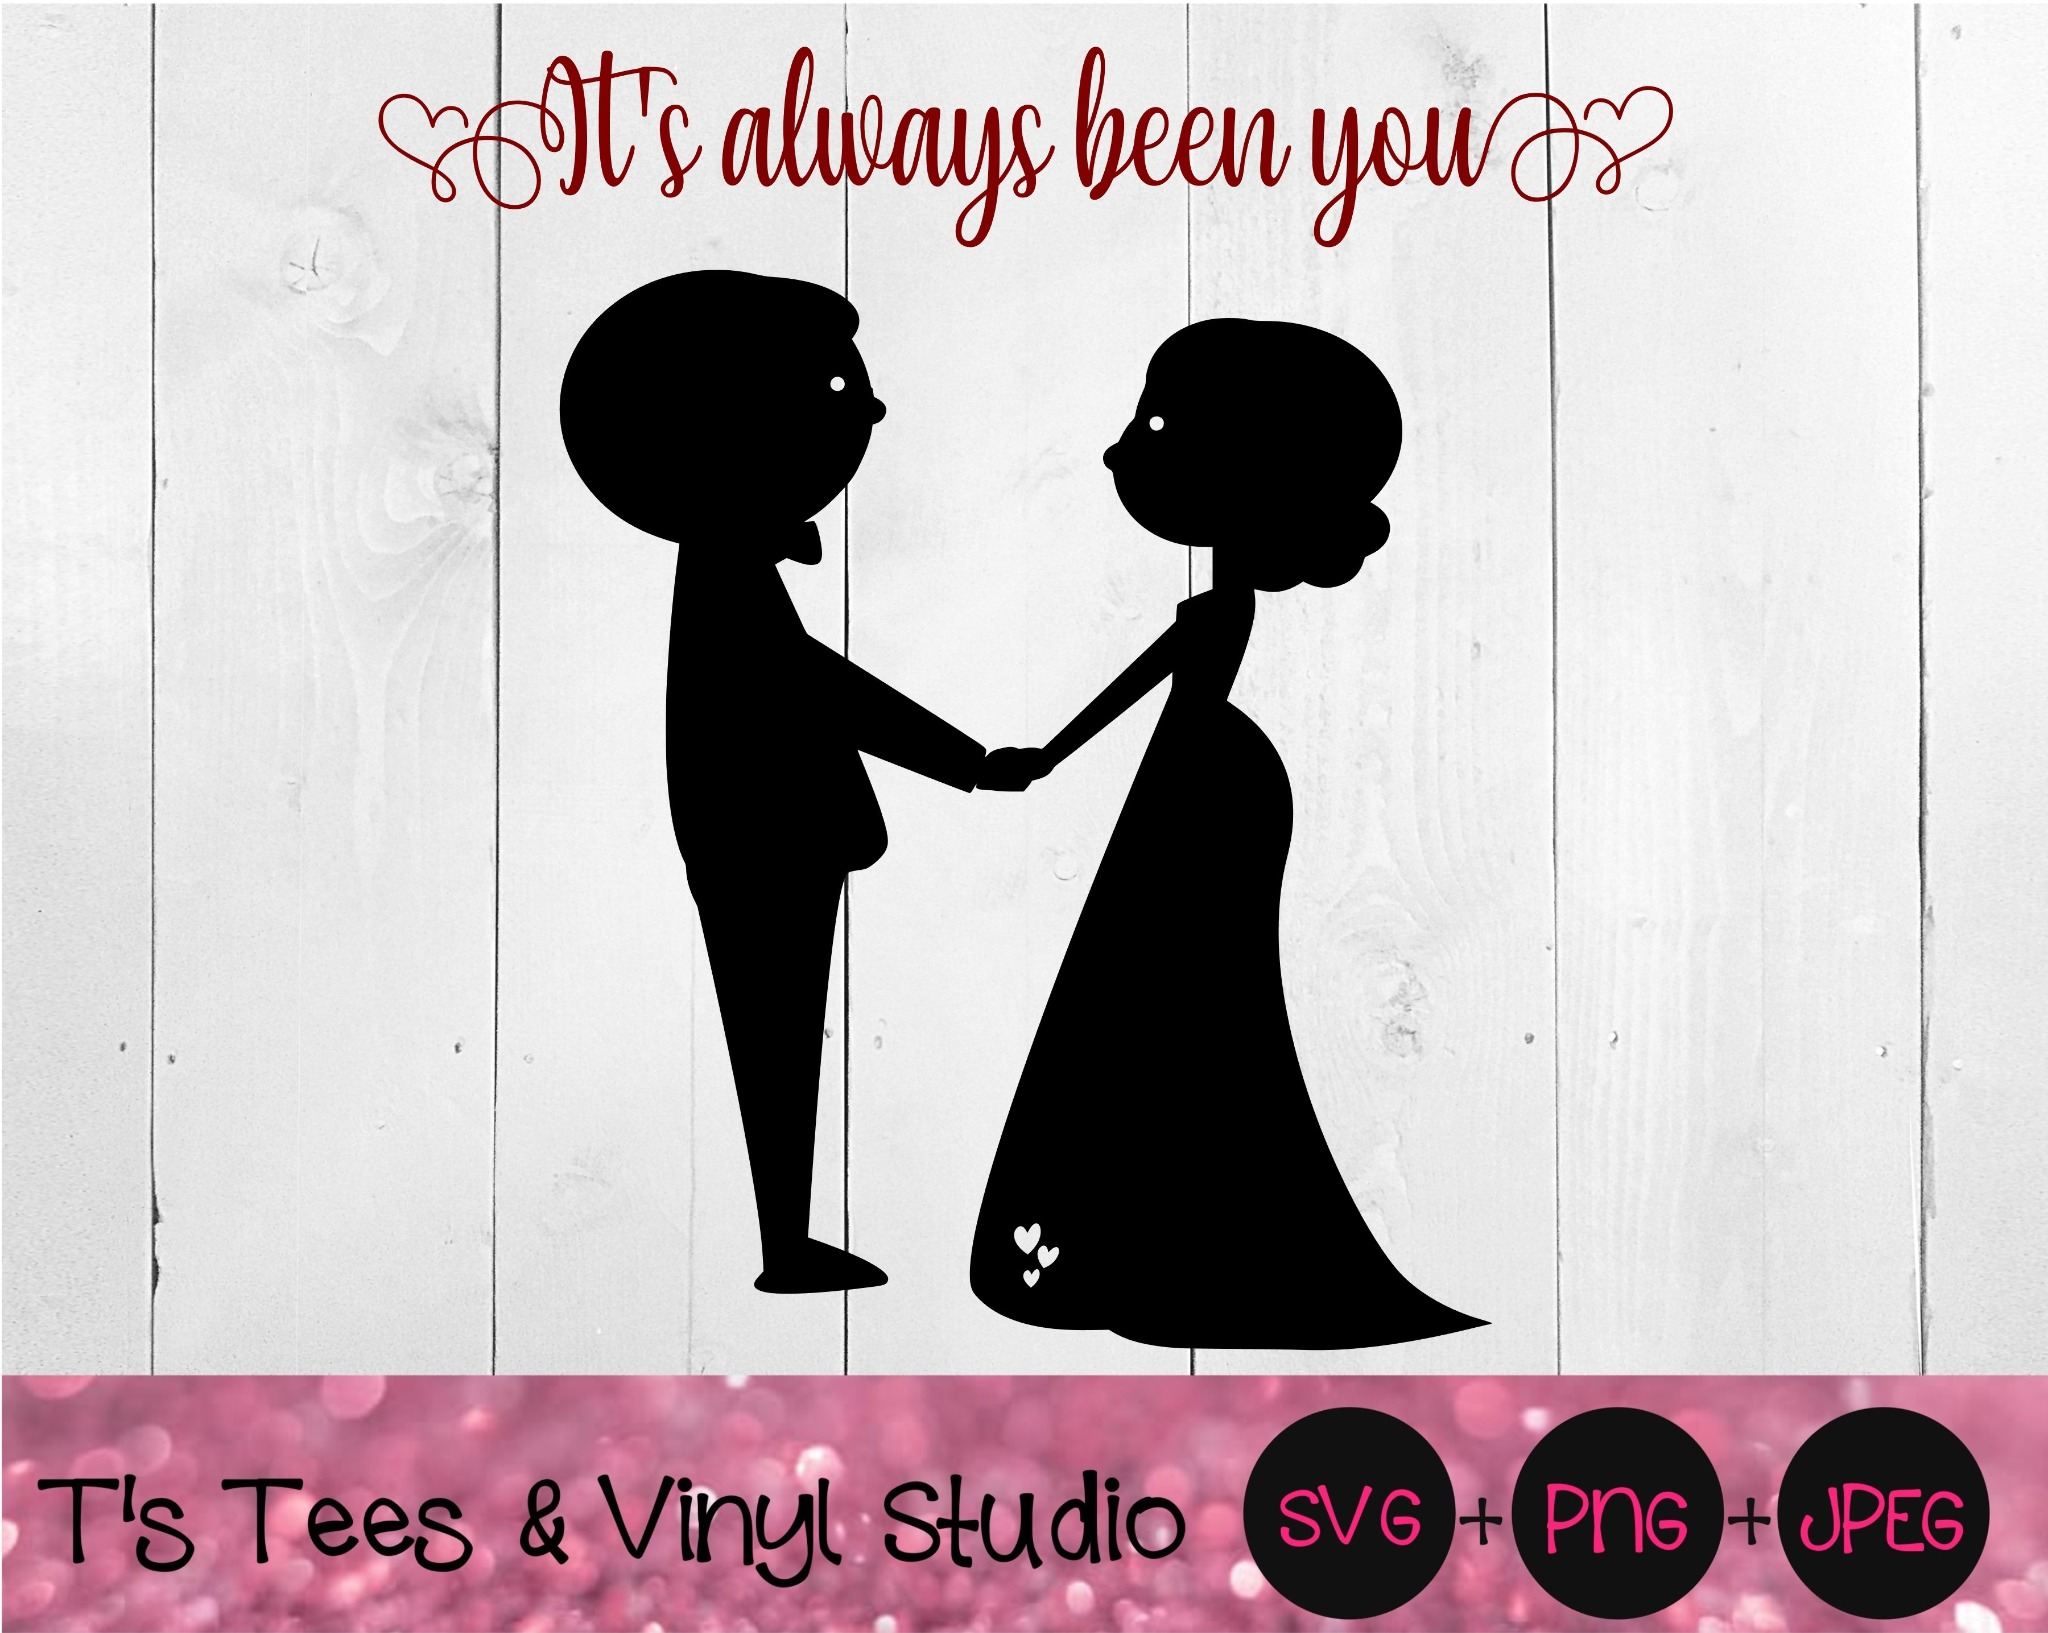 It's Always Been You Svg, Wedding Couple SVG, Marriage Svg, Proposal Svg, Married Svg, Bride and Gro